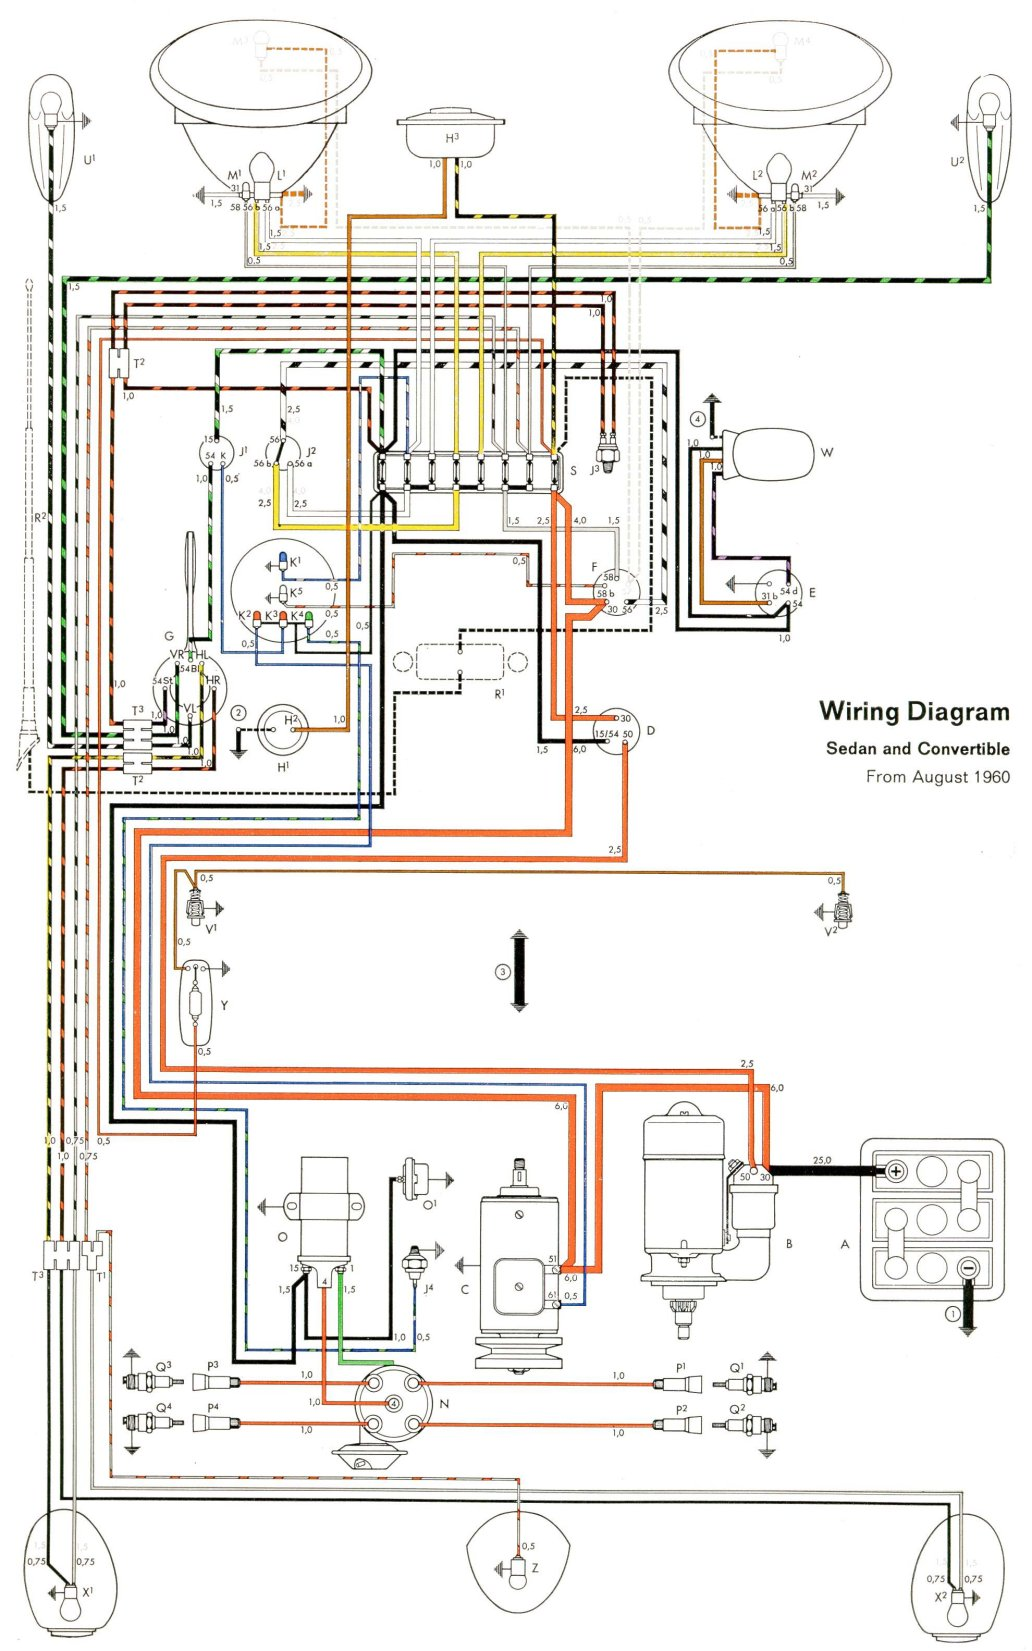 thesamba com type 1 wiring diagrams rh thesamba com Wiring Harness Wiring-Diagram 1971 Volkswagen Wiring Diagram